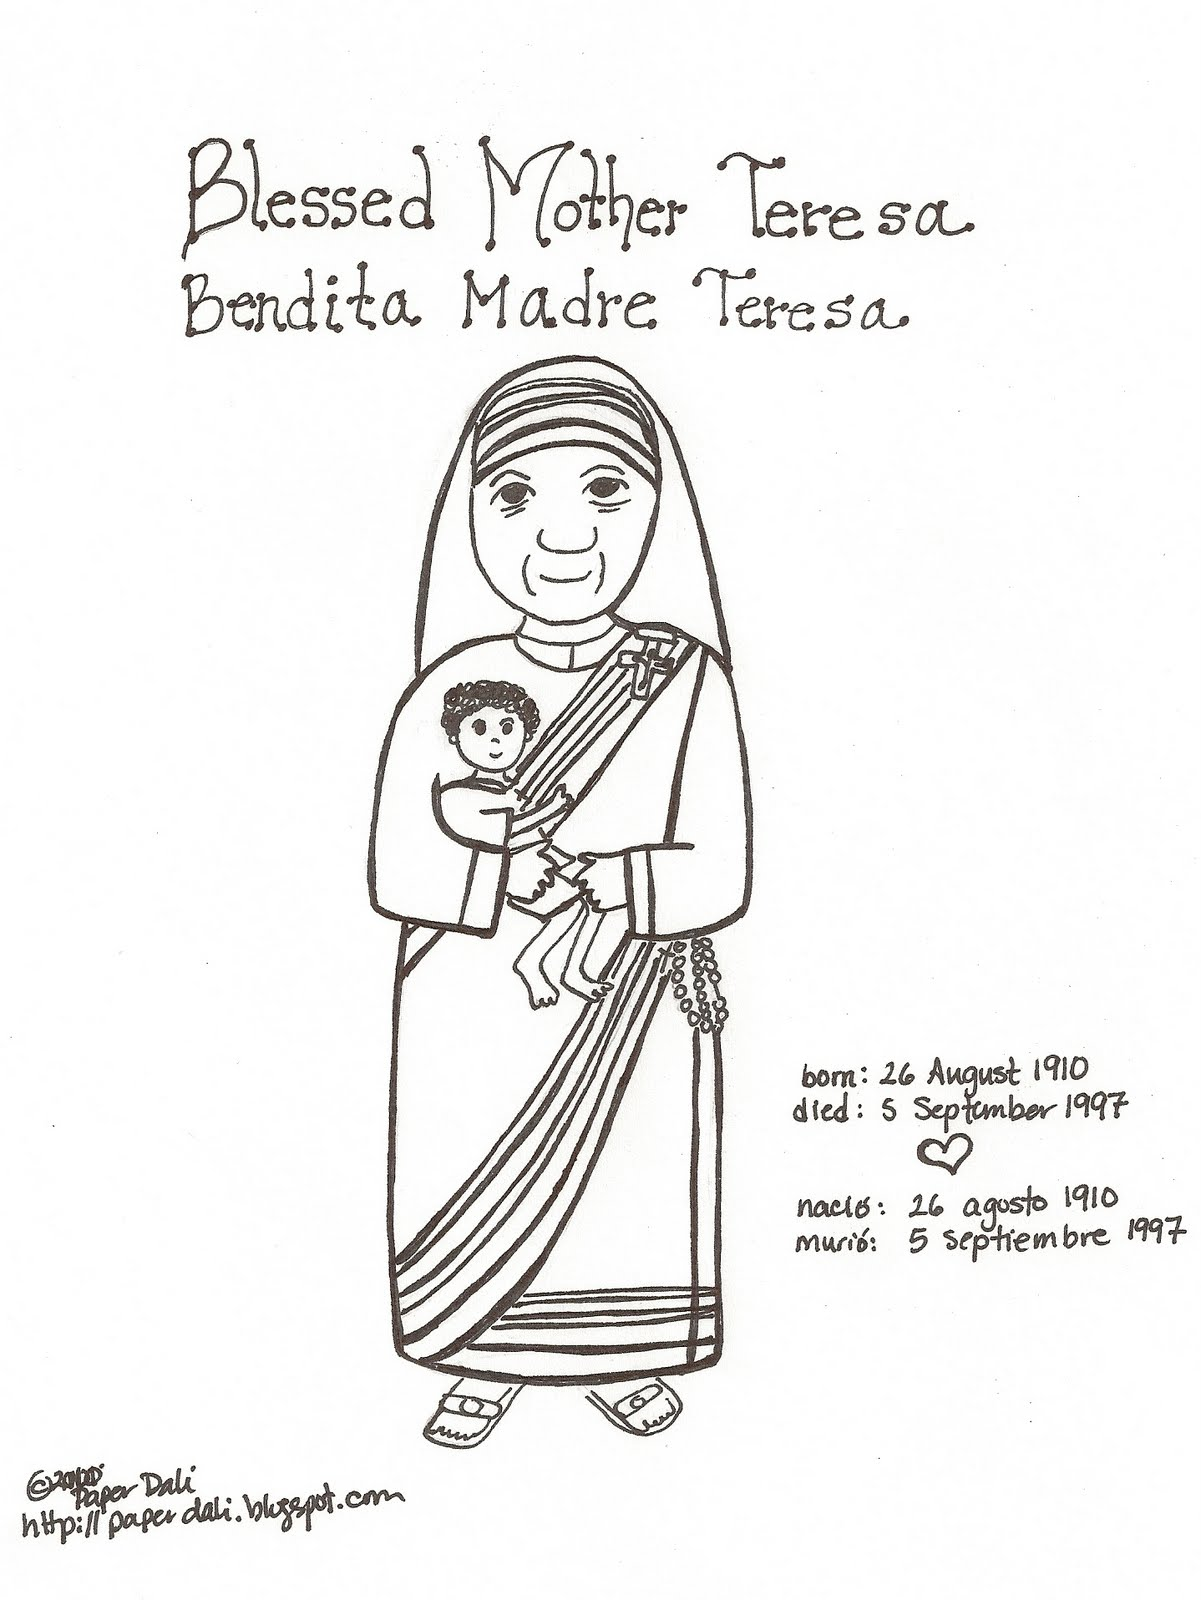 Paper dali happy birthday mother teresa for Mother teresa coloring page